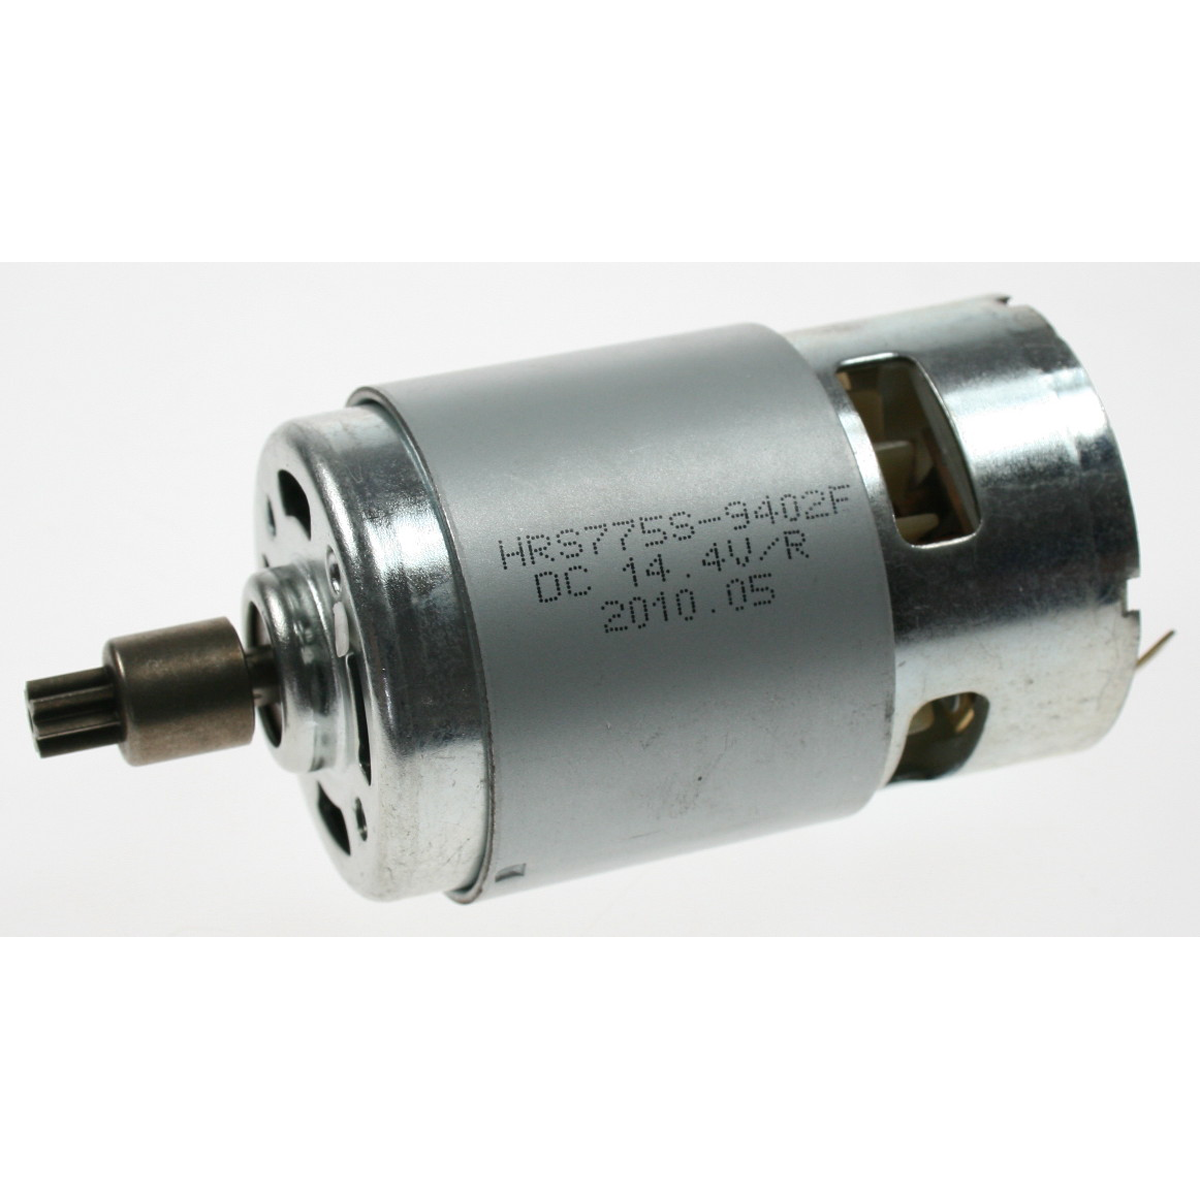 Sealey CP1440.22 - Motor Assembly